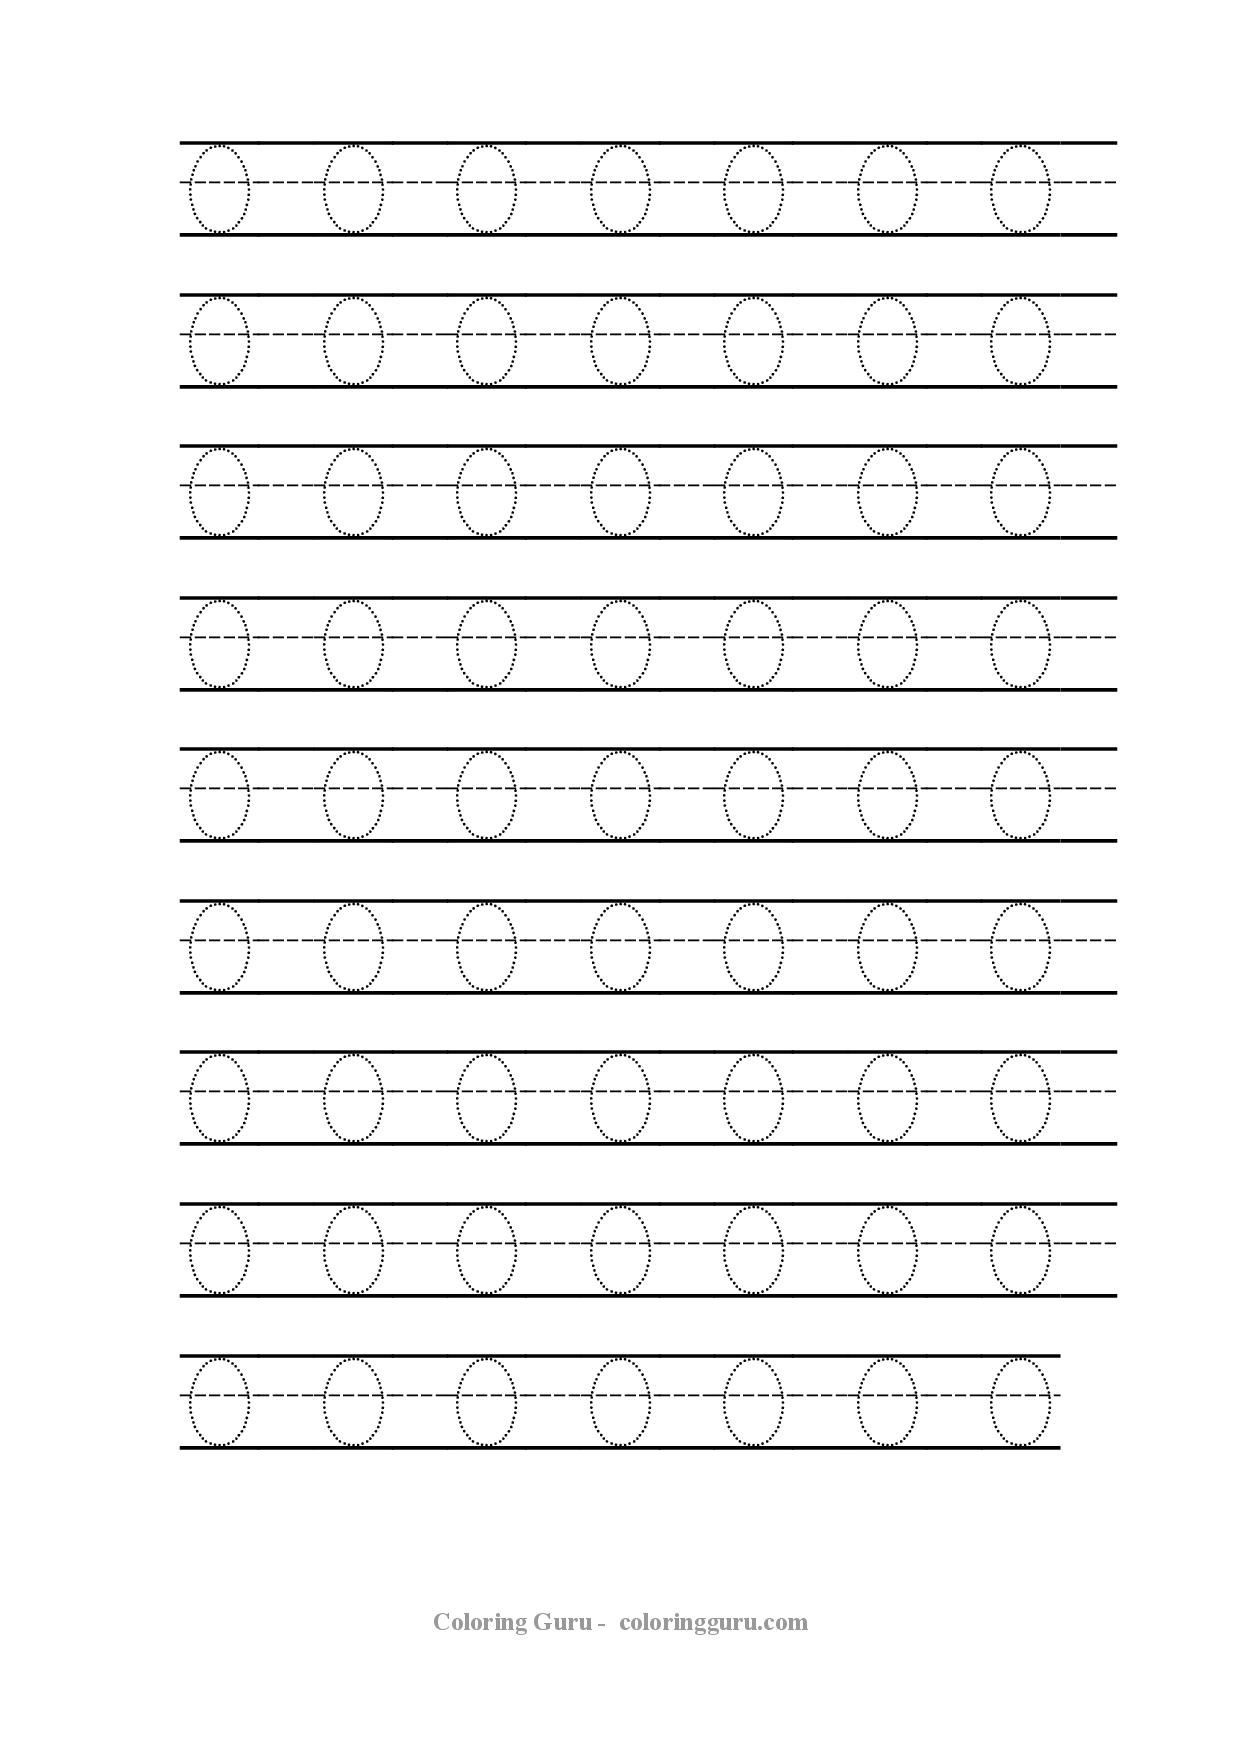 Free Printable Number Tracing Worksheets Free Printable Tracing Number 0 Worksheets